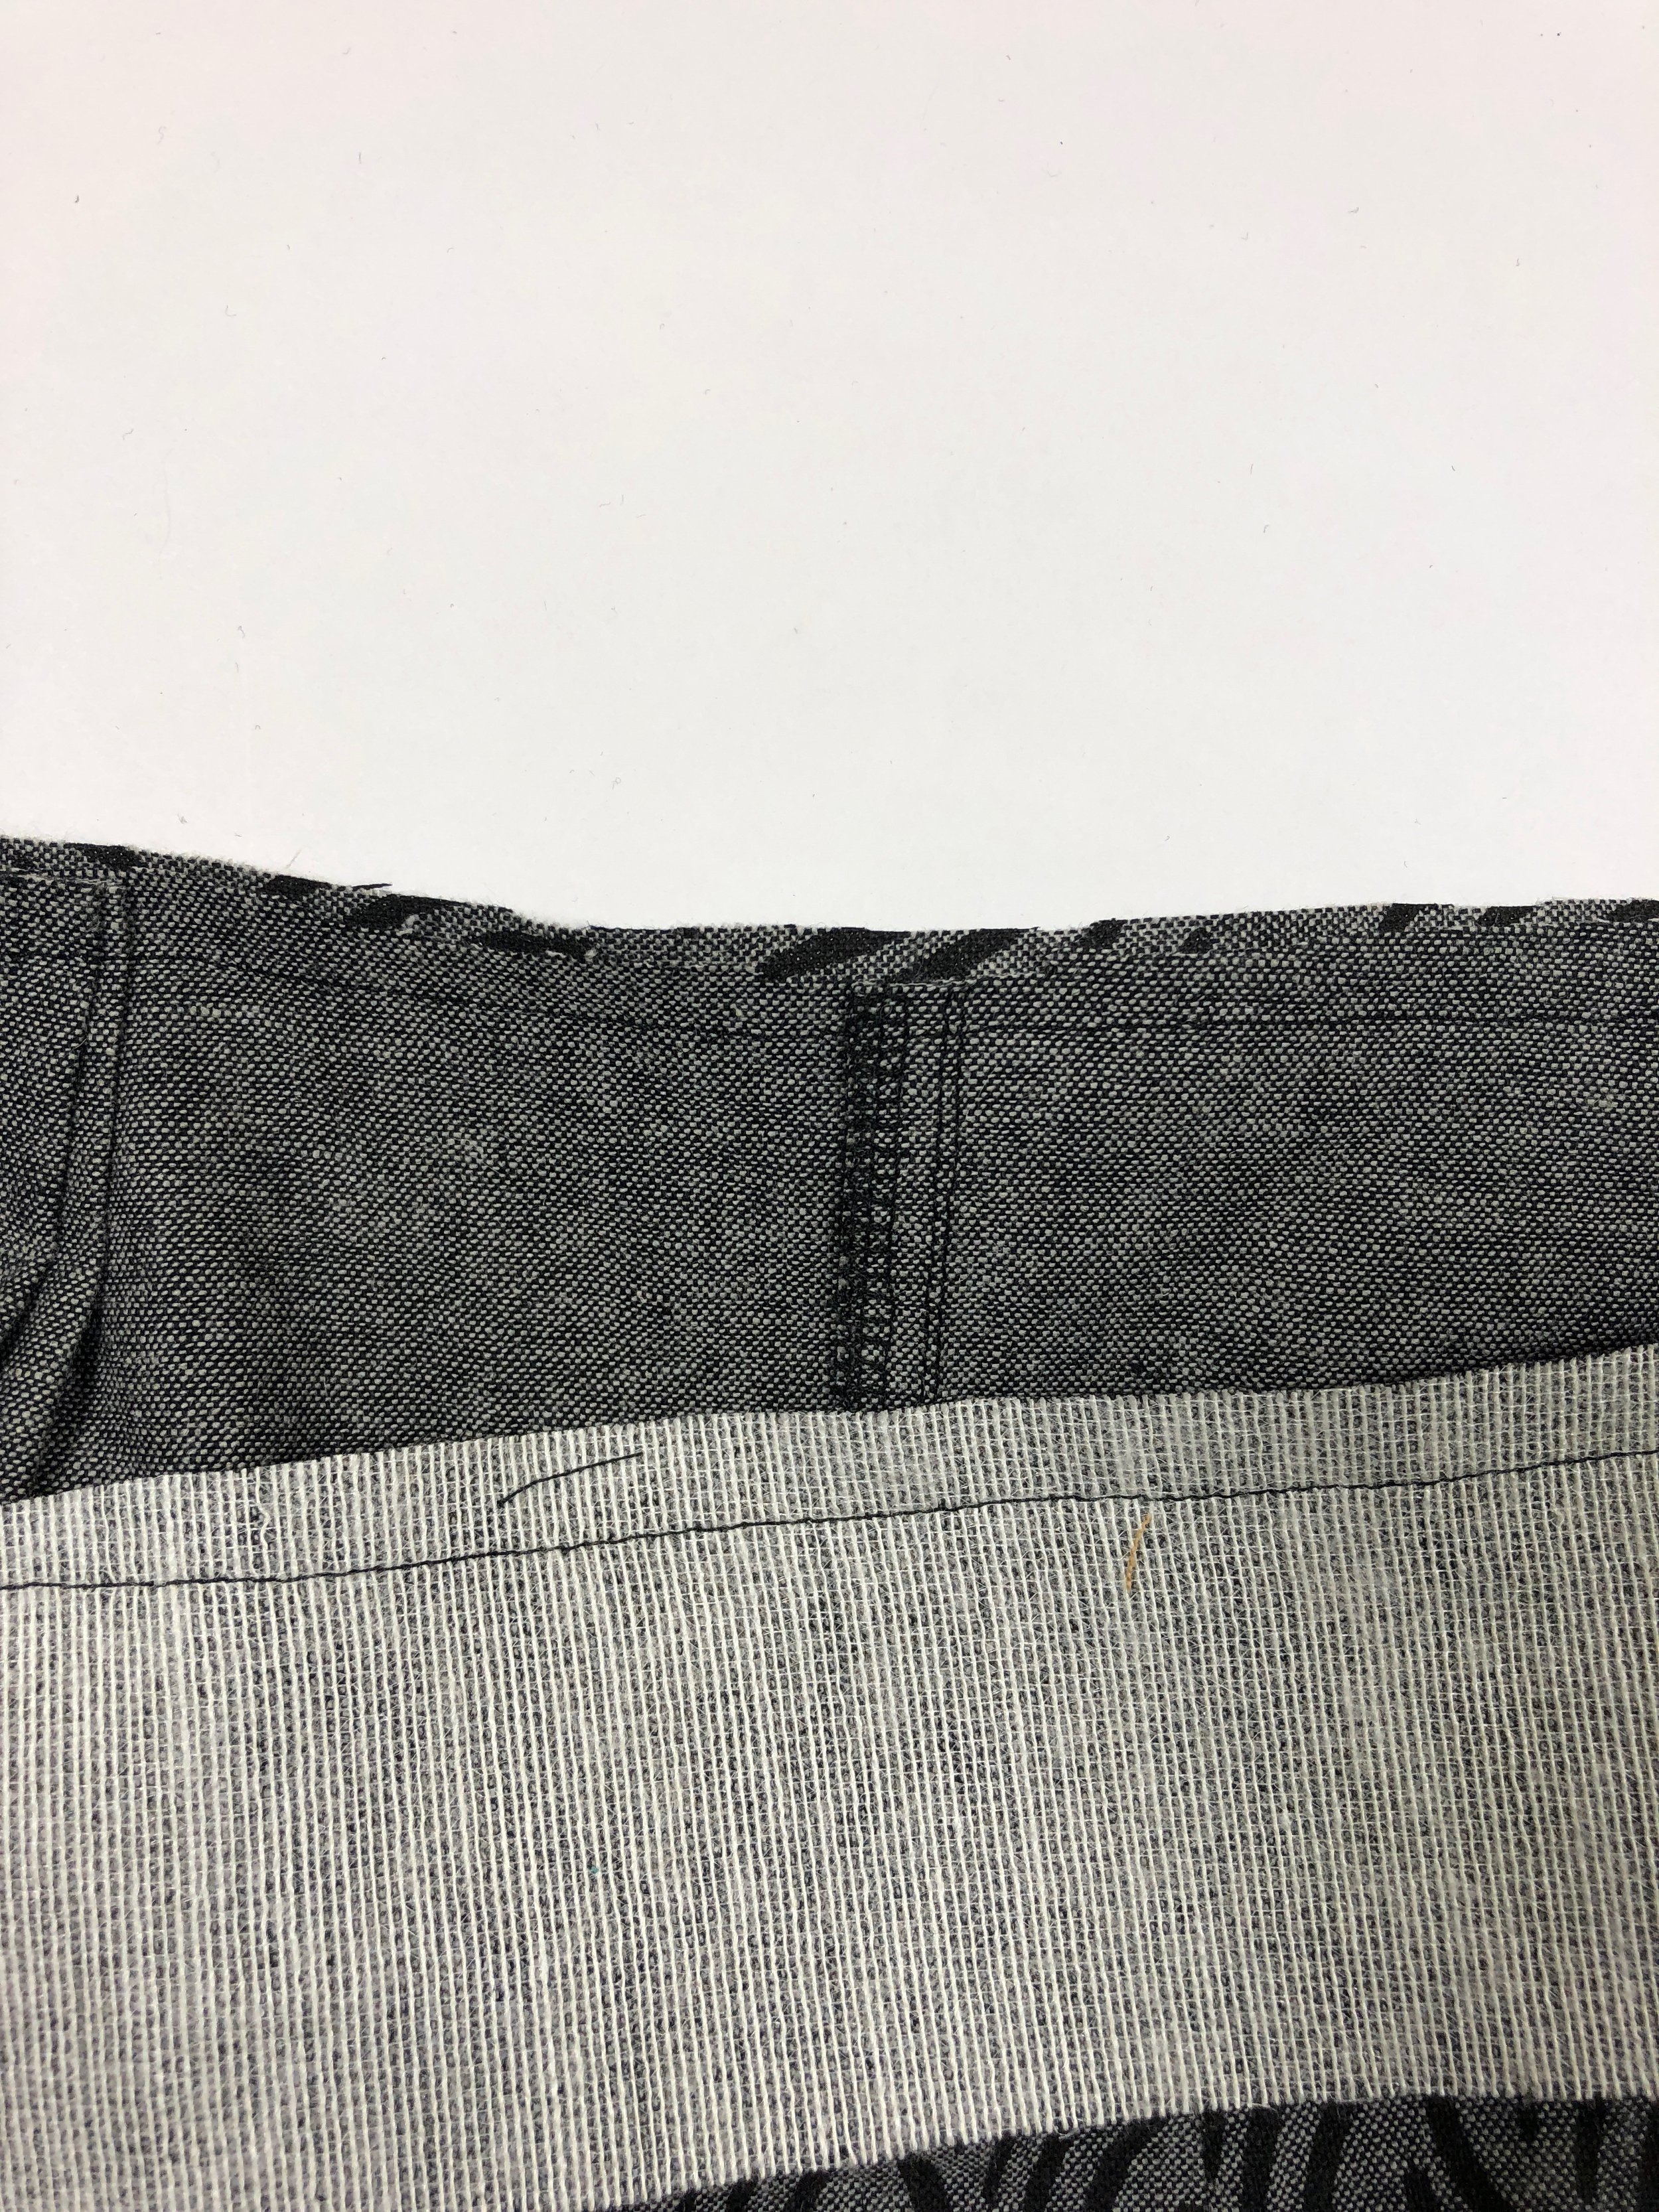 """44. Trim seam allowance to 3/8"""", and grade the pants seam allowance to 1/4""""."""